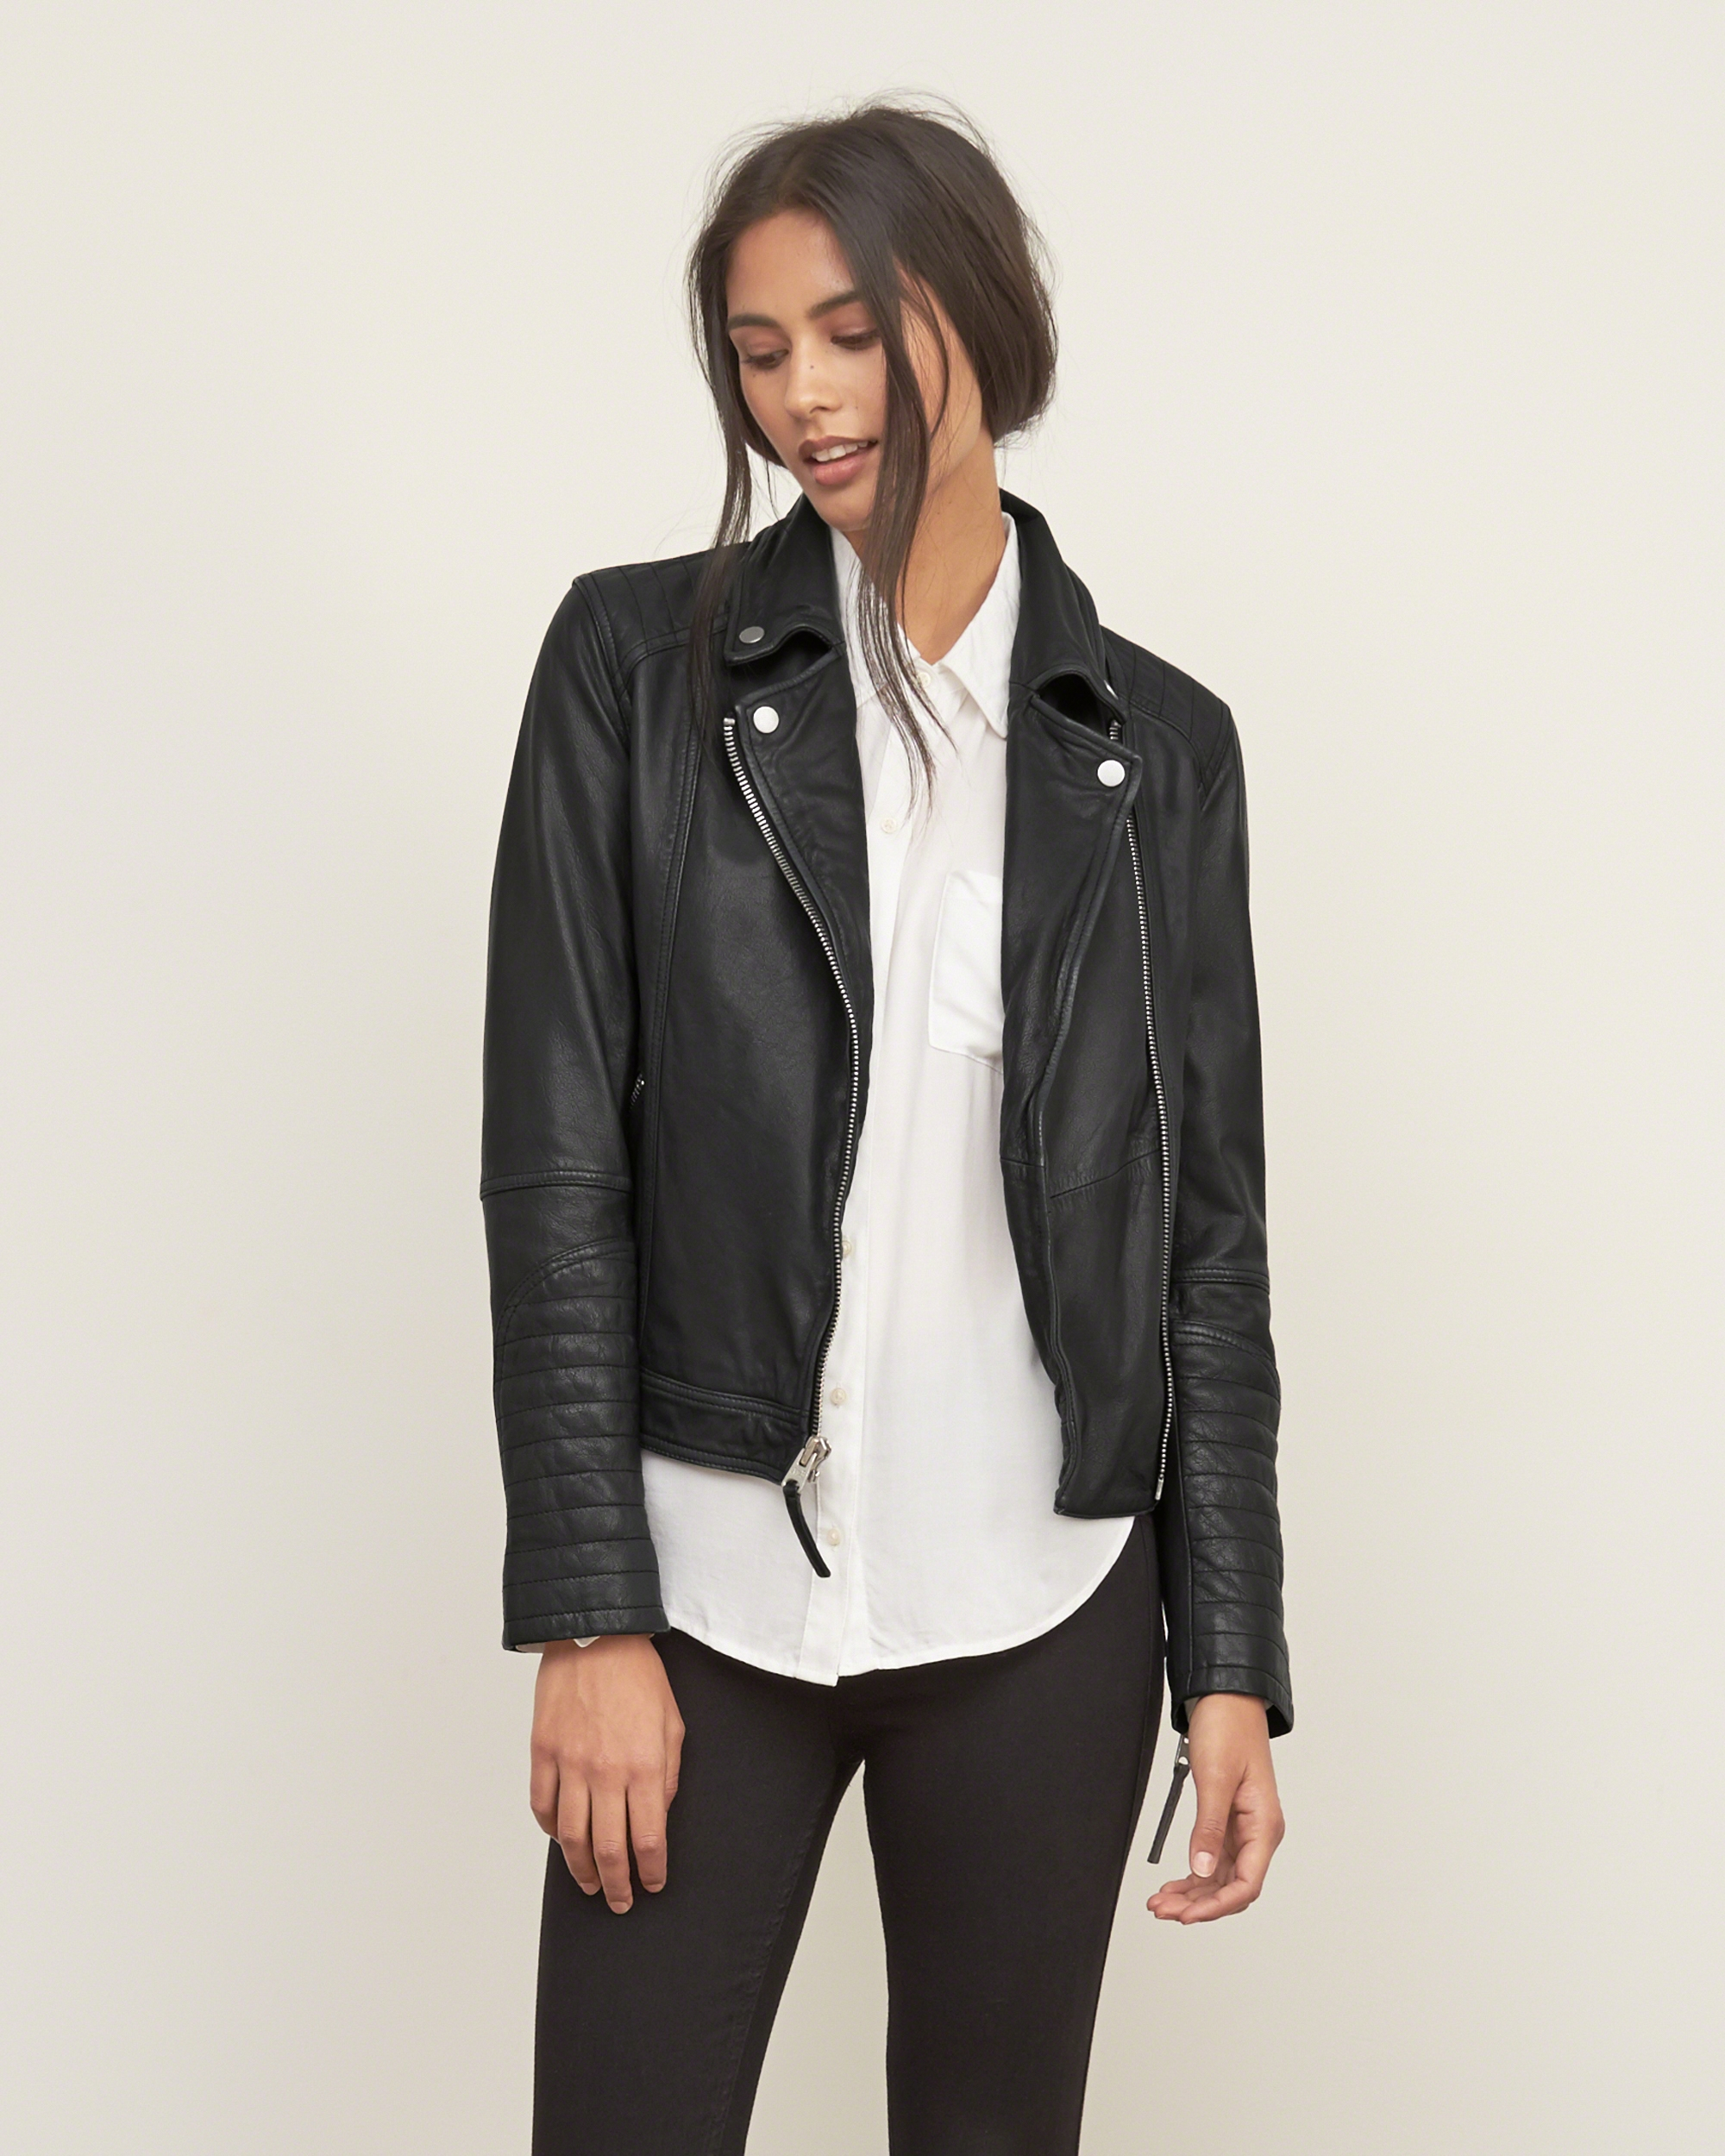 Abercrombie Fitch Accessories Abercrombie Fitch Womens: Abercrombie & Fitch Genuine Leather Biker Jacket In Black